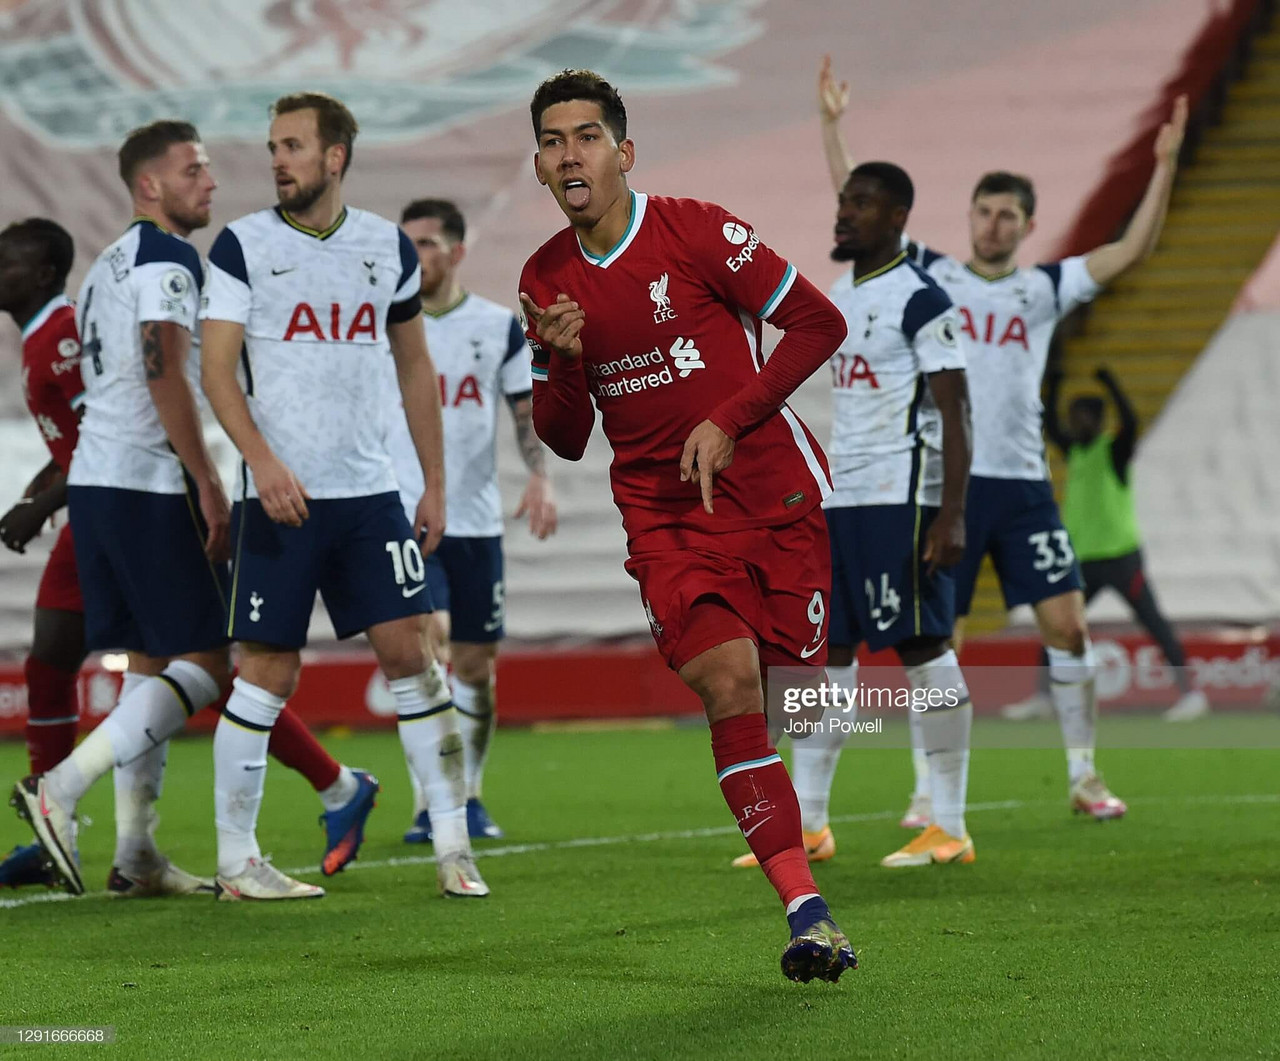 Liverpool 2-1 Spurs: Reds steal a march as Firmino snatches victory